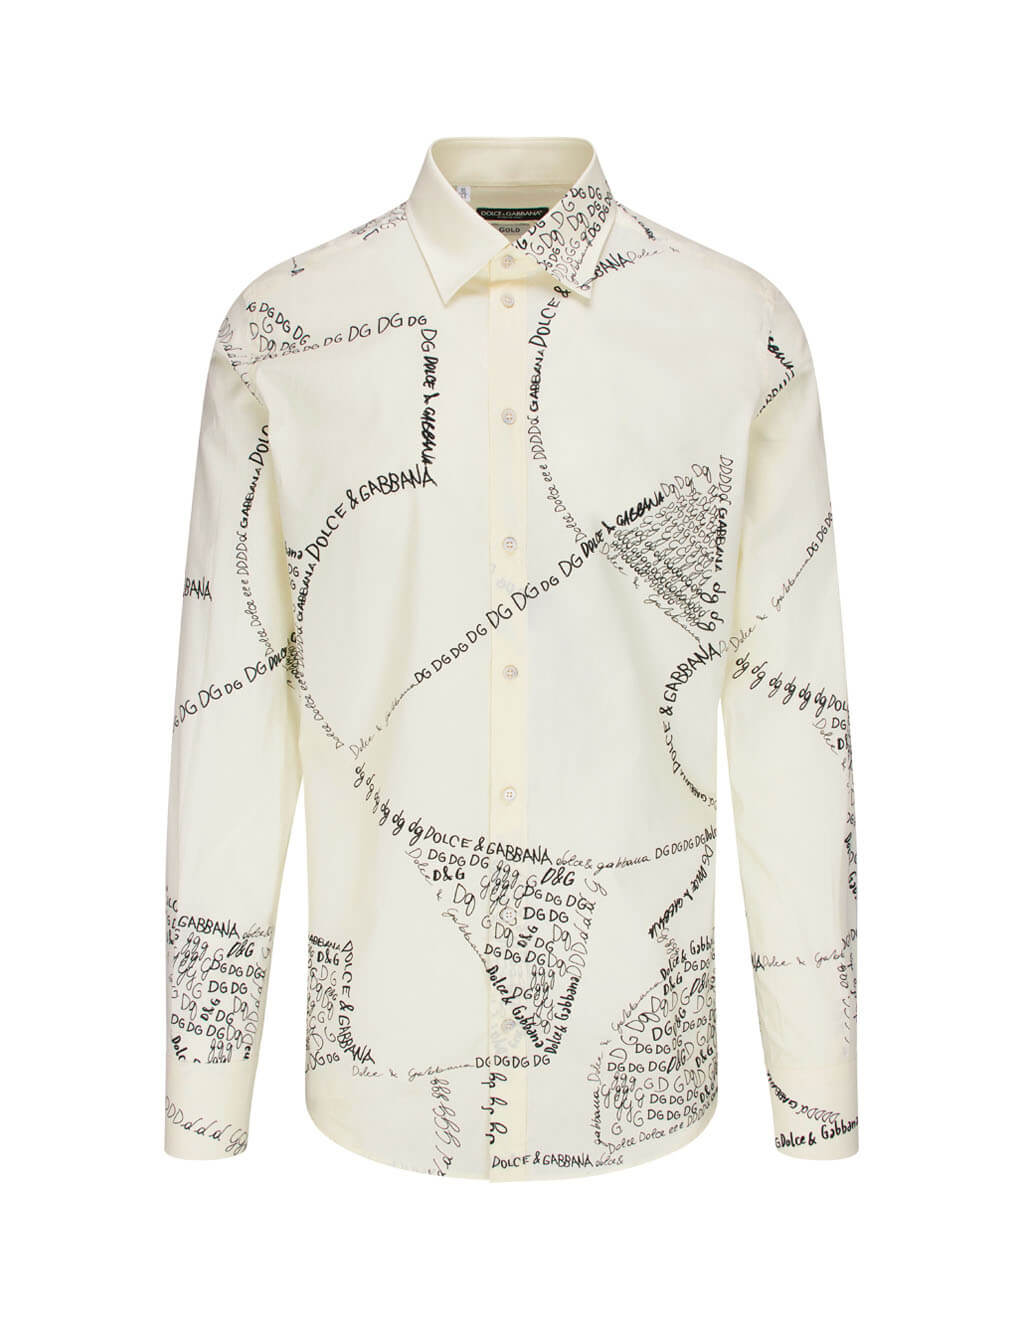 Dolce&Gabbana Men's Giulio Fashion Cream DNA Shirt  G5FT8THP570HA2ER